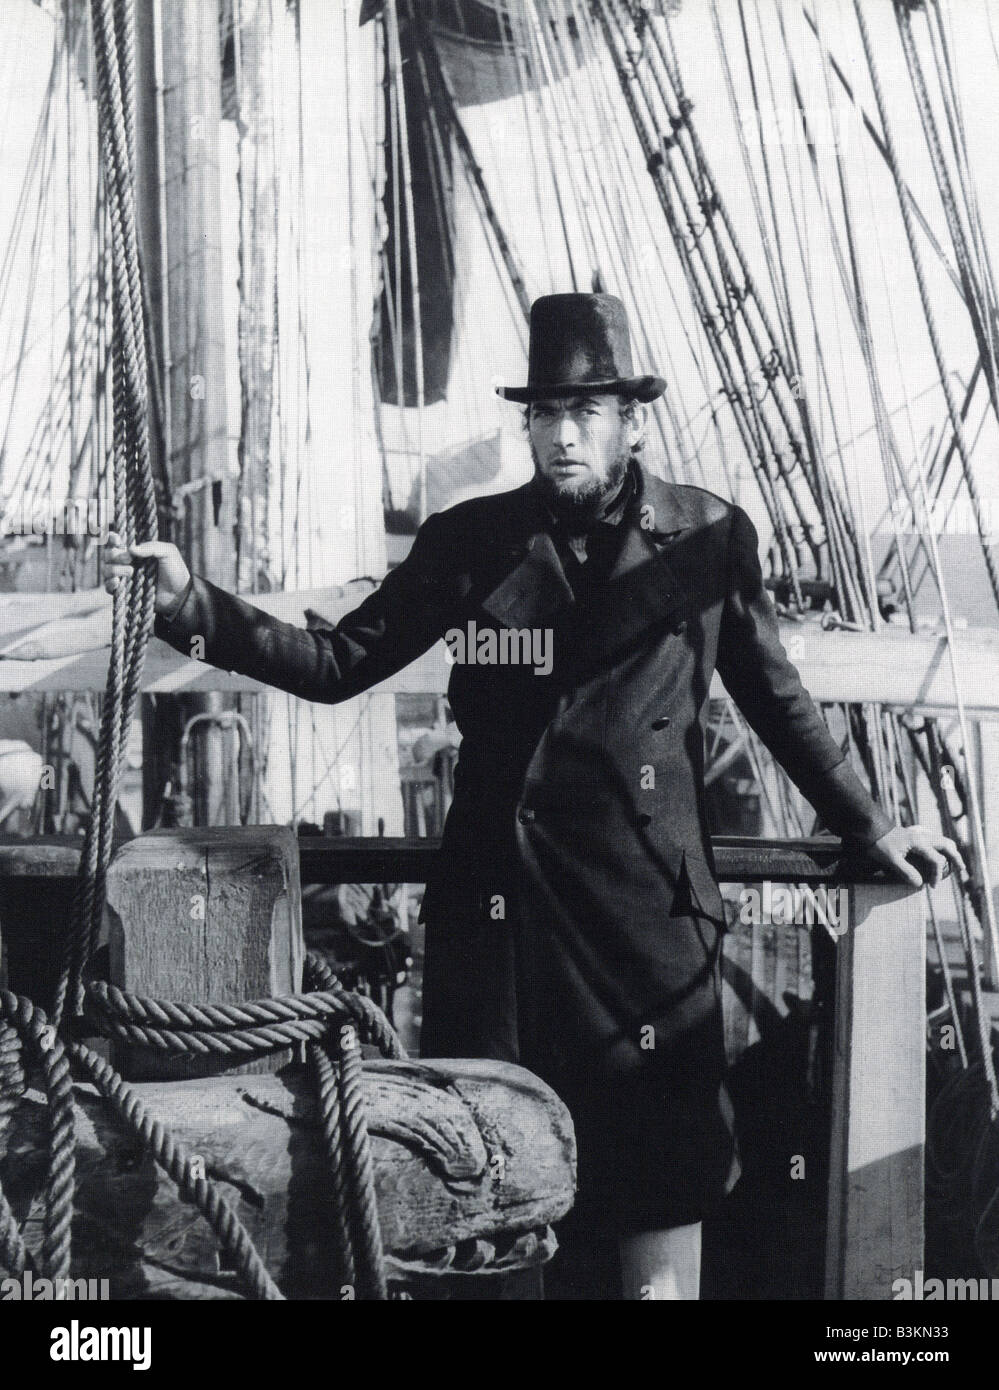 Capitaine moby dick